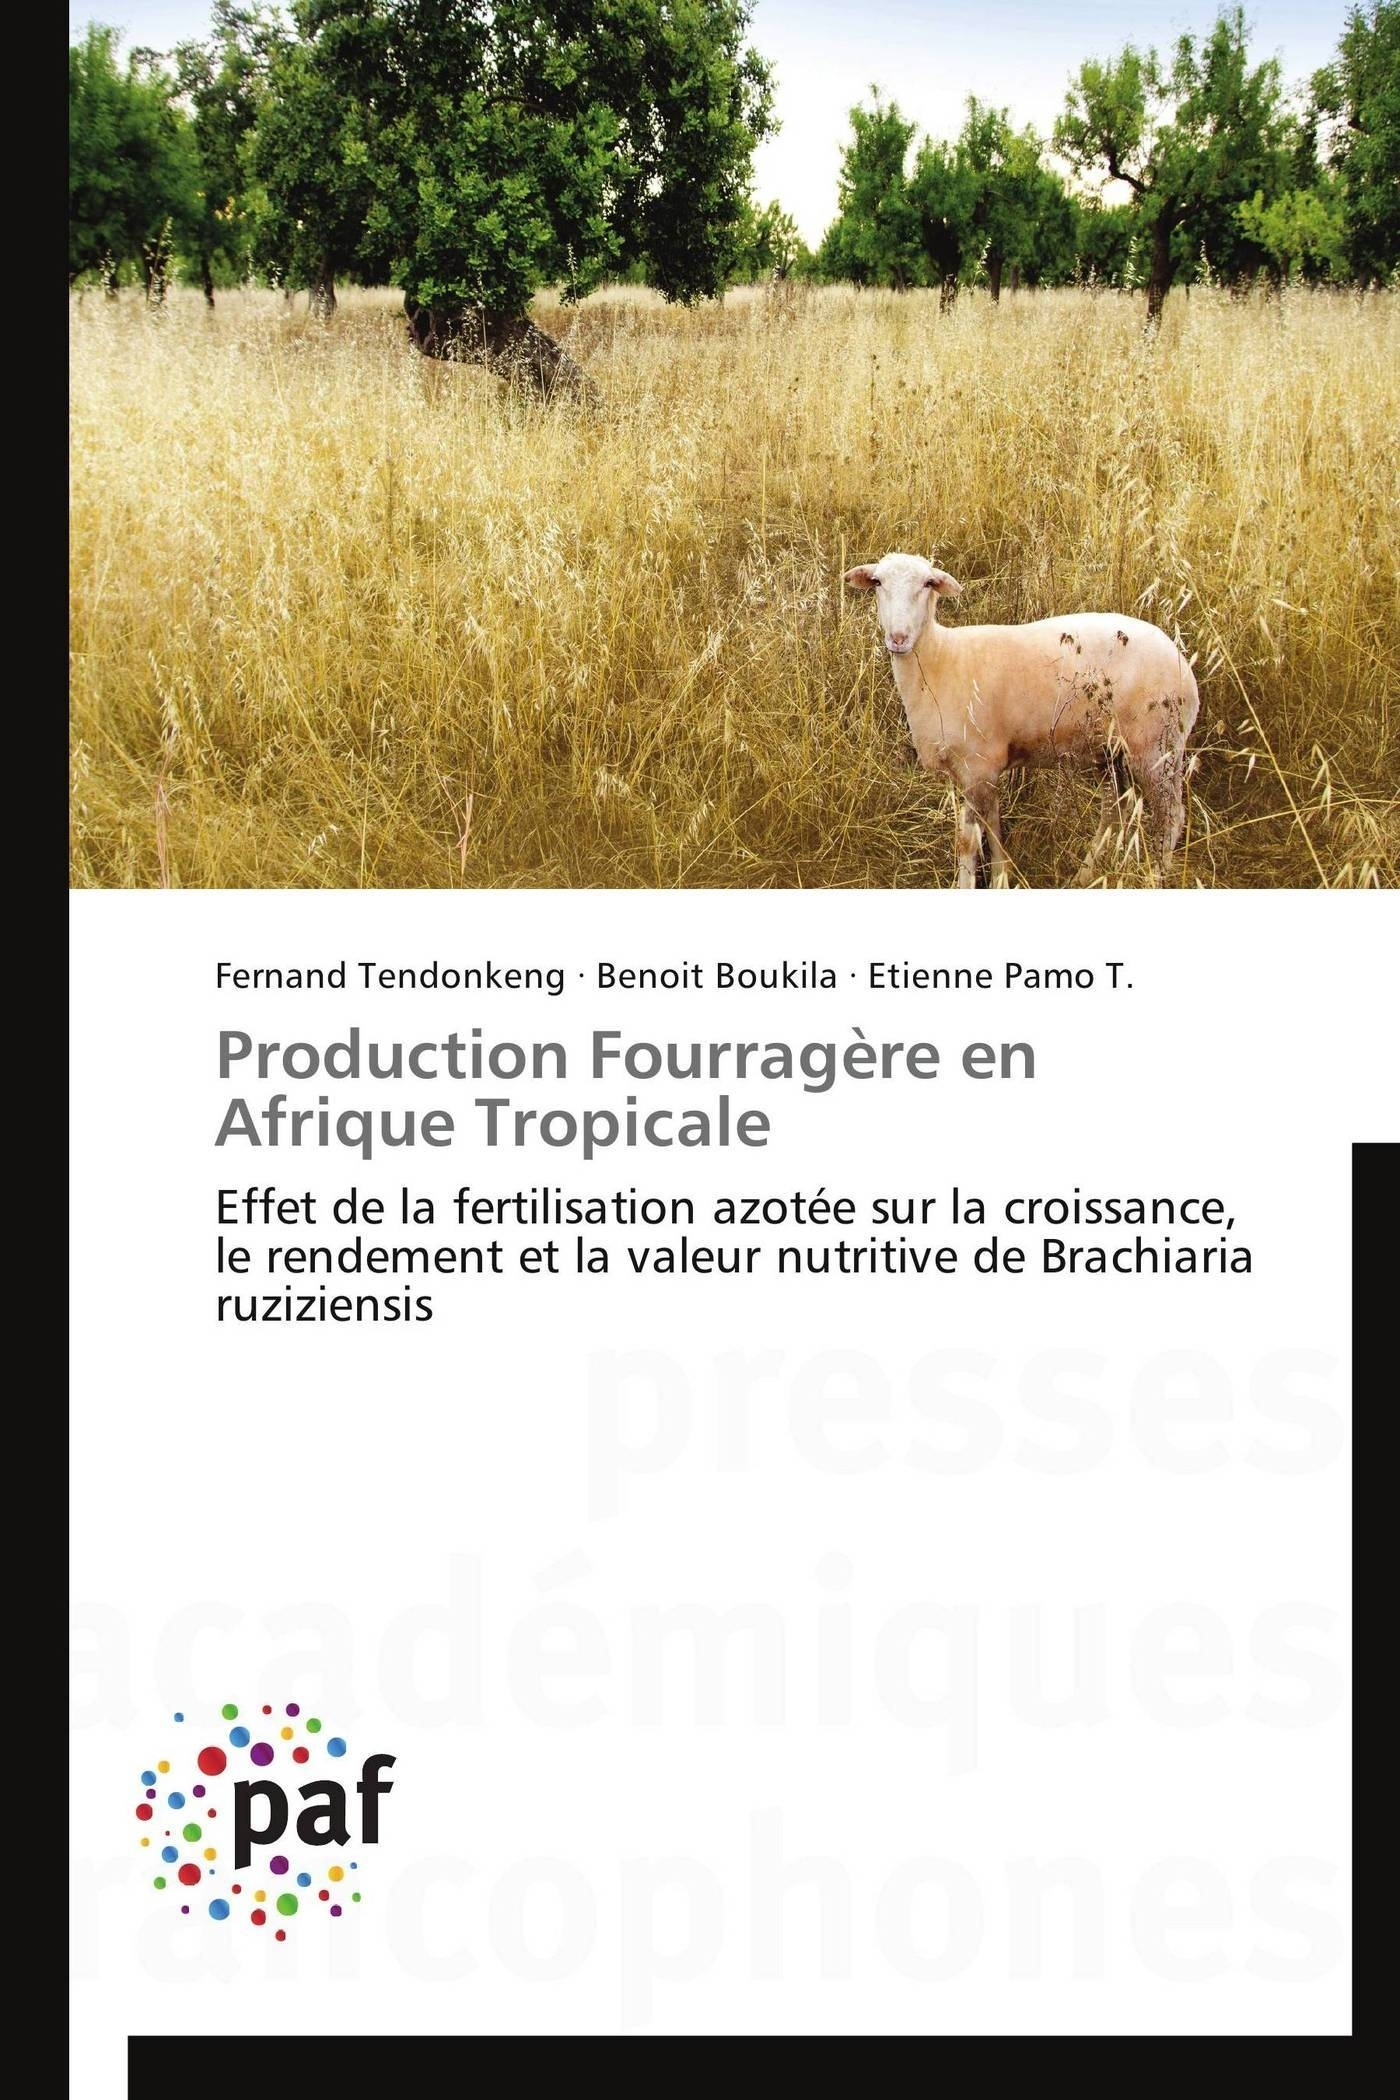 PRODUCTION FOURRAGERE EN AFRIQUE TROPICALE